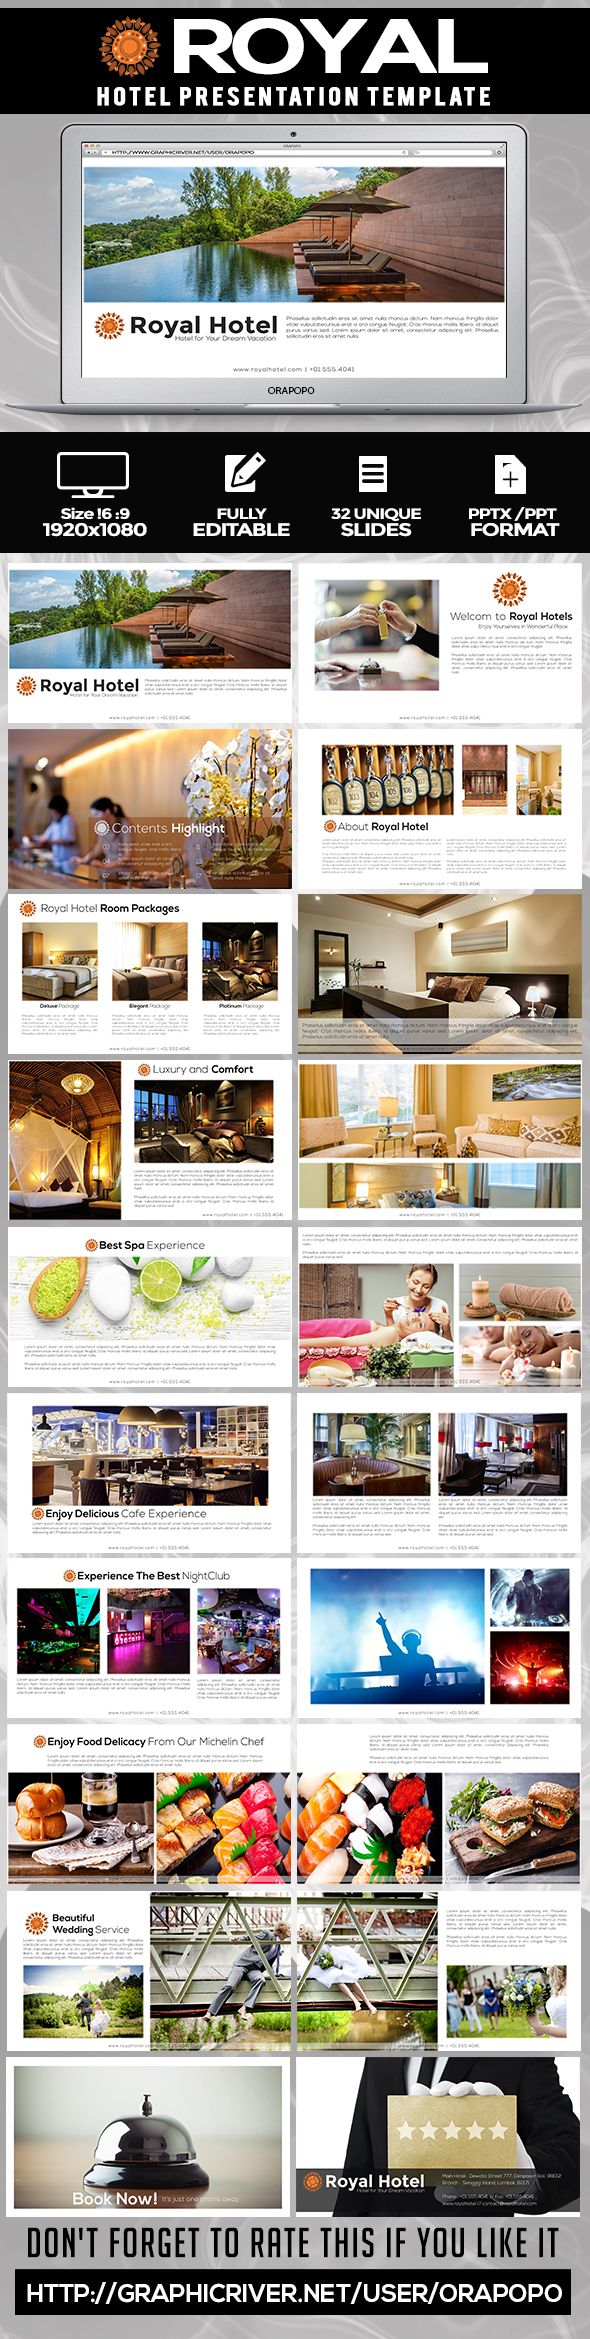 Royal ~ Hotel PowerPoint Presentation Template. Download here: http://graphicriver.net/item/royal-hotel-presentation-template/15073168?ref=ksioks